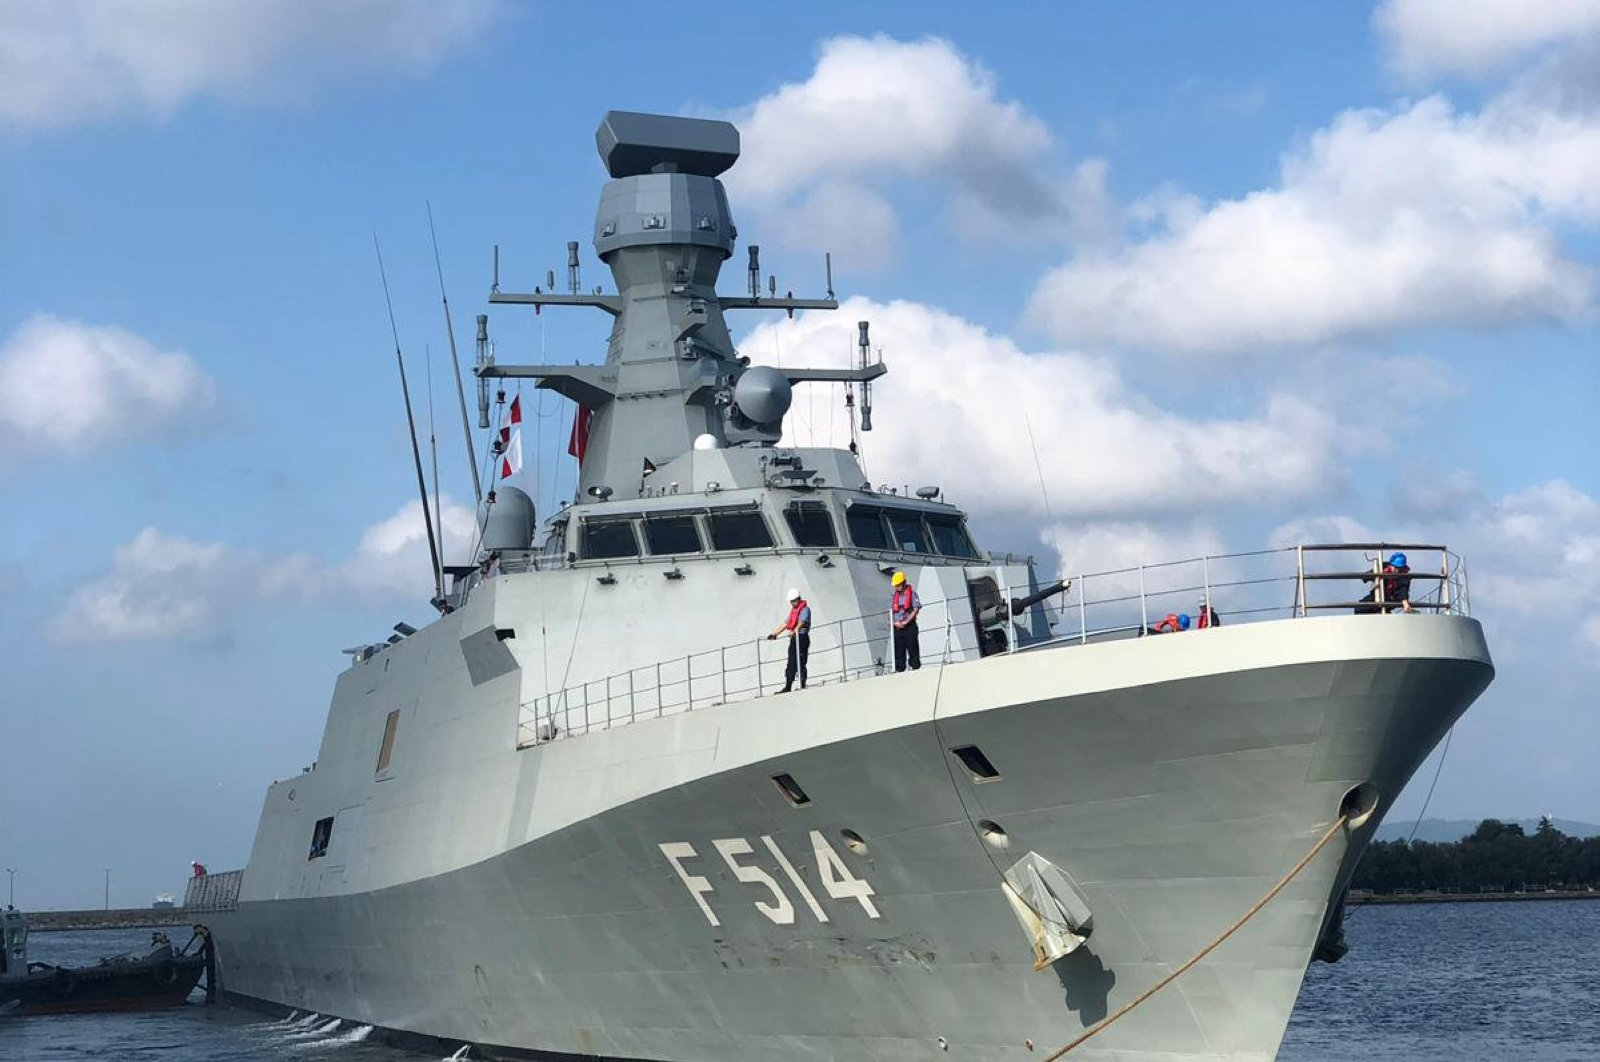 TCG Kınalıada, the 4th vessel produced as part of the MİLGEM project seen in this file photo from Oct. 1, 2019. (AA Photo)